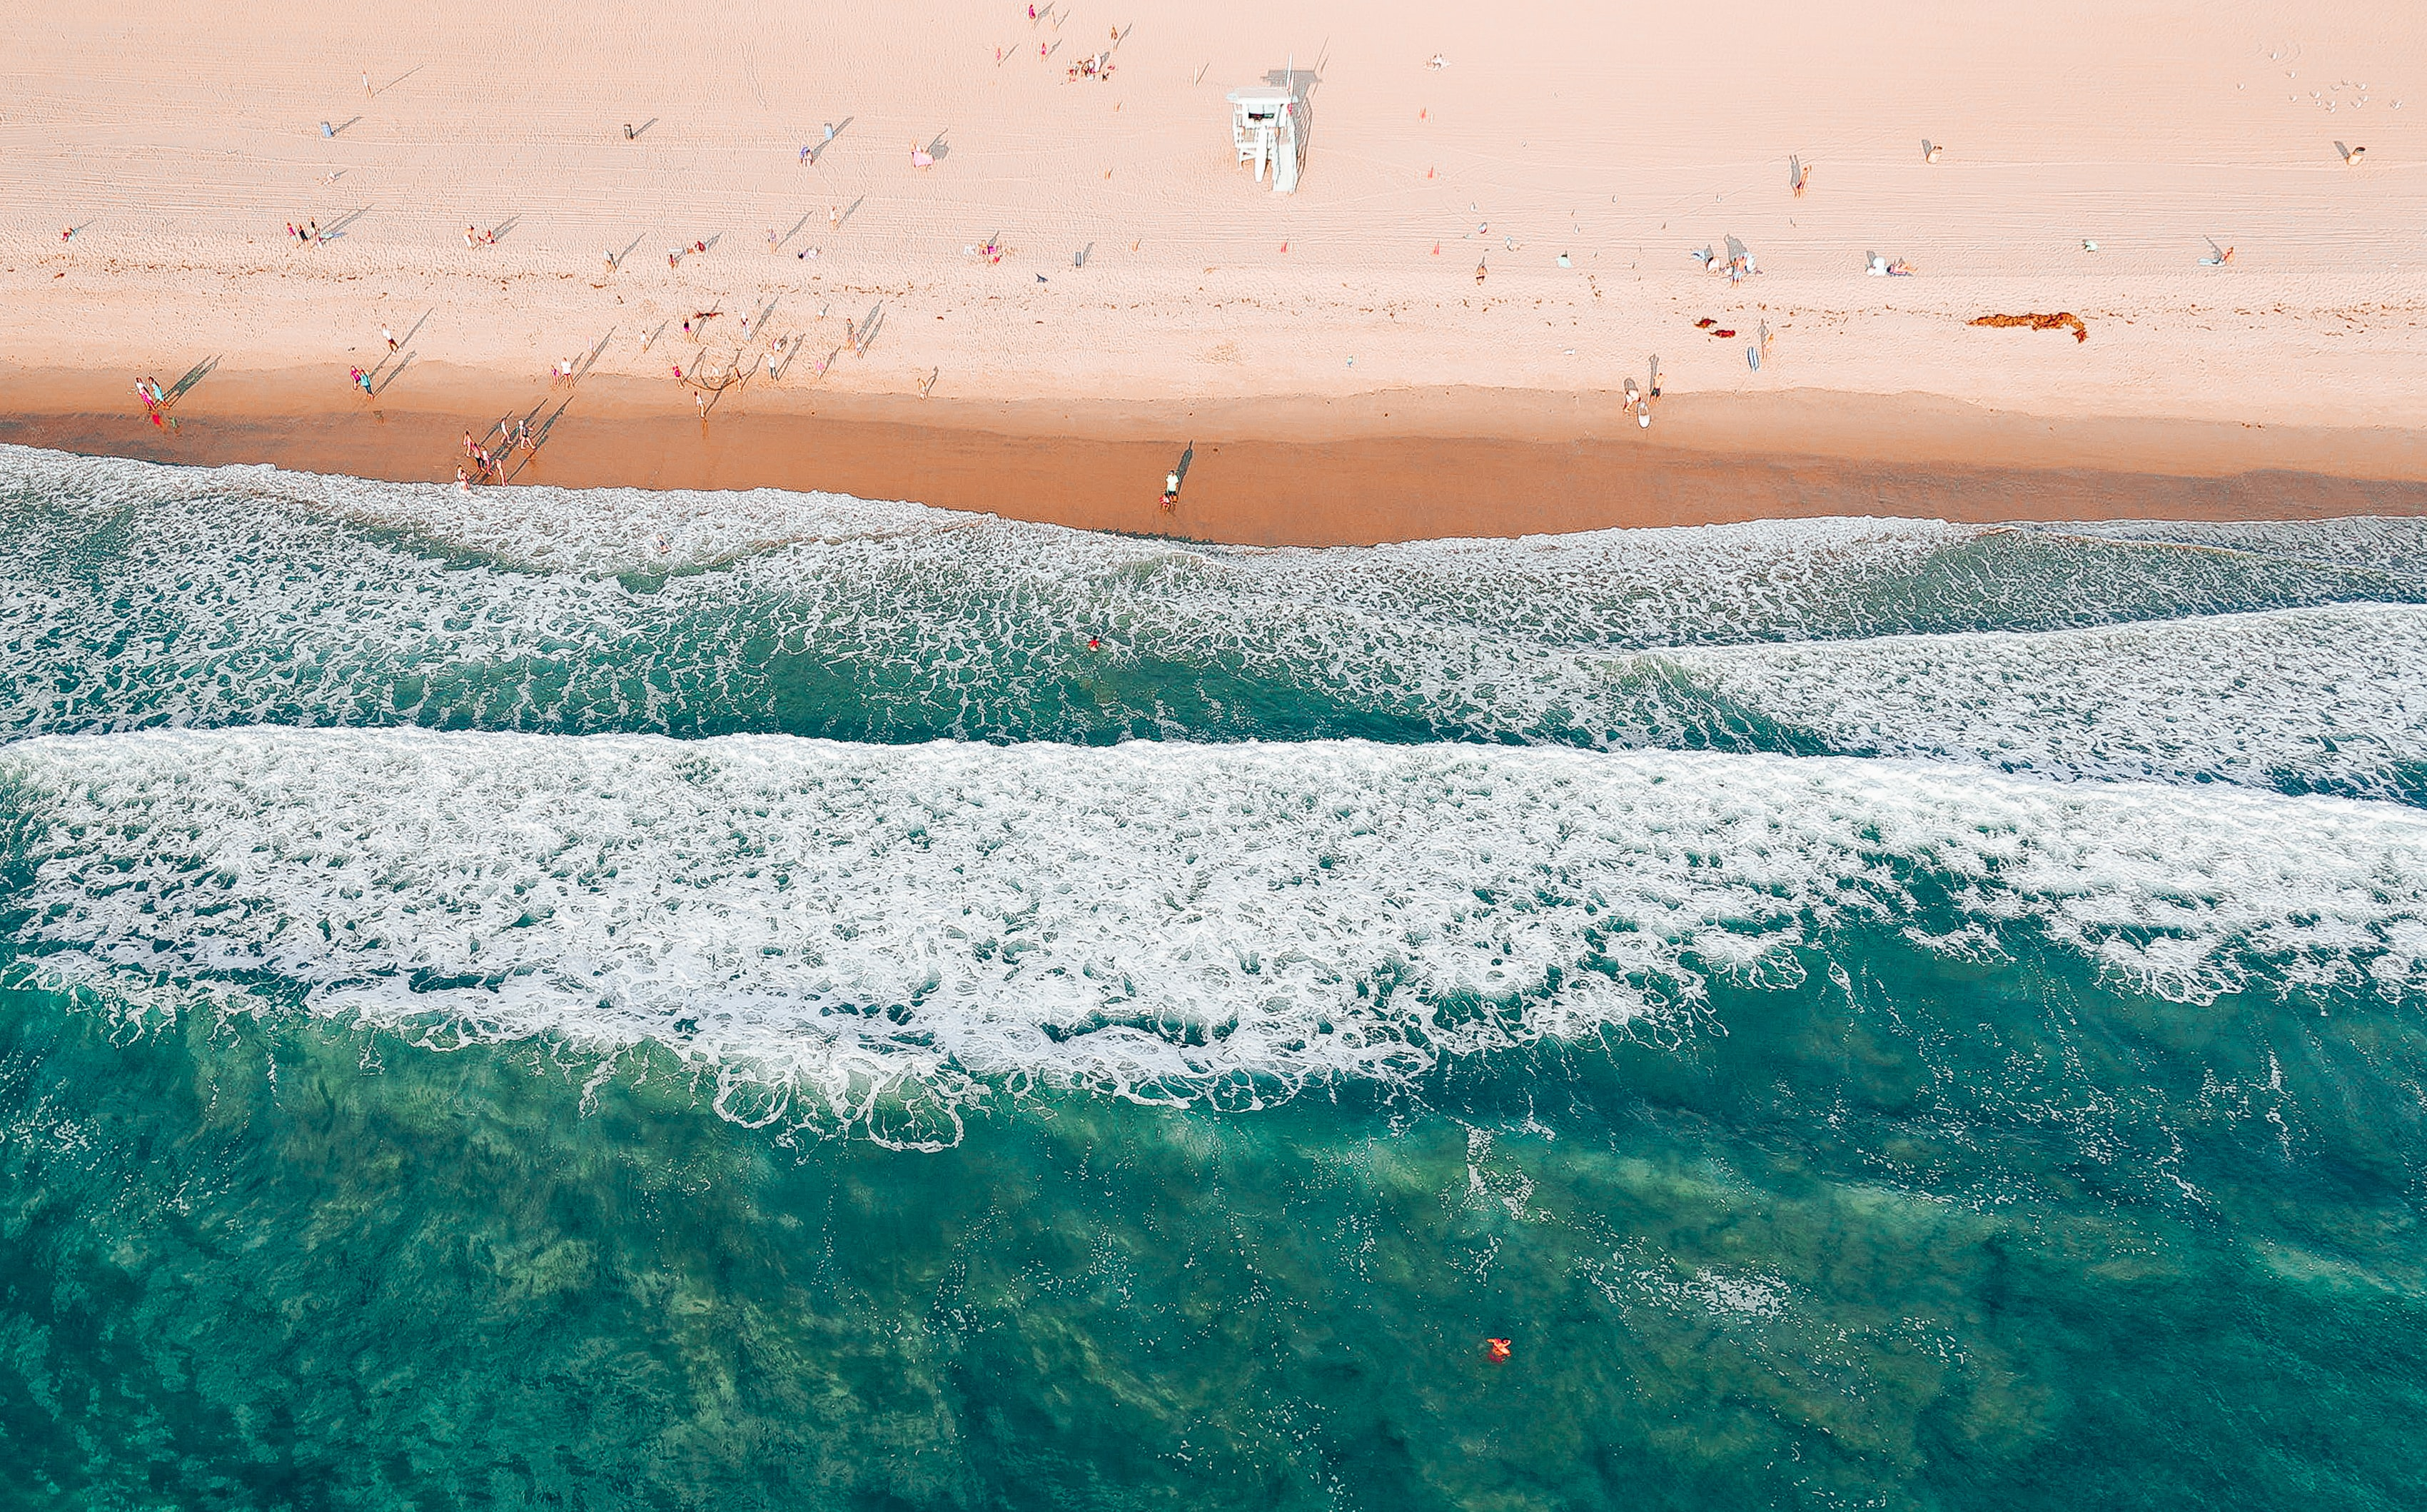 A drone view of people hanging out at the beach, swimming and tanning